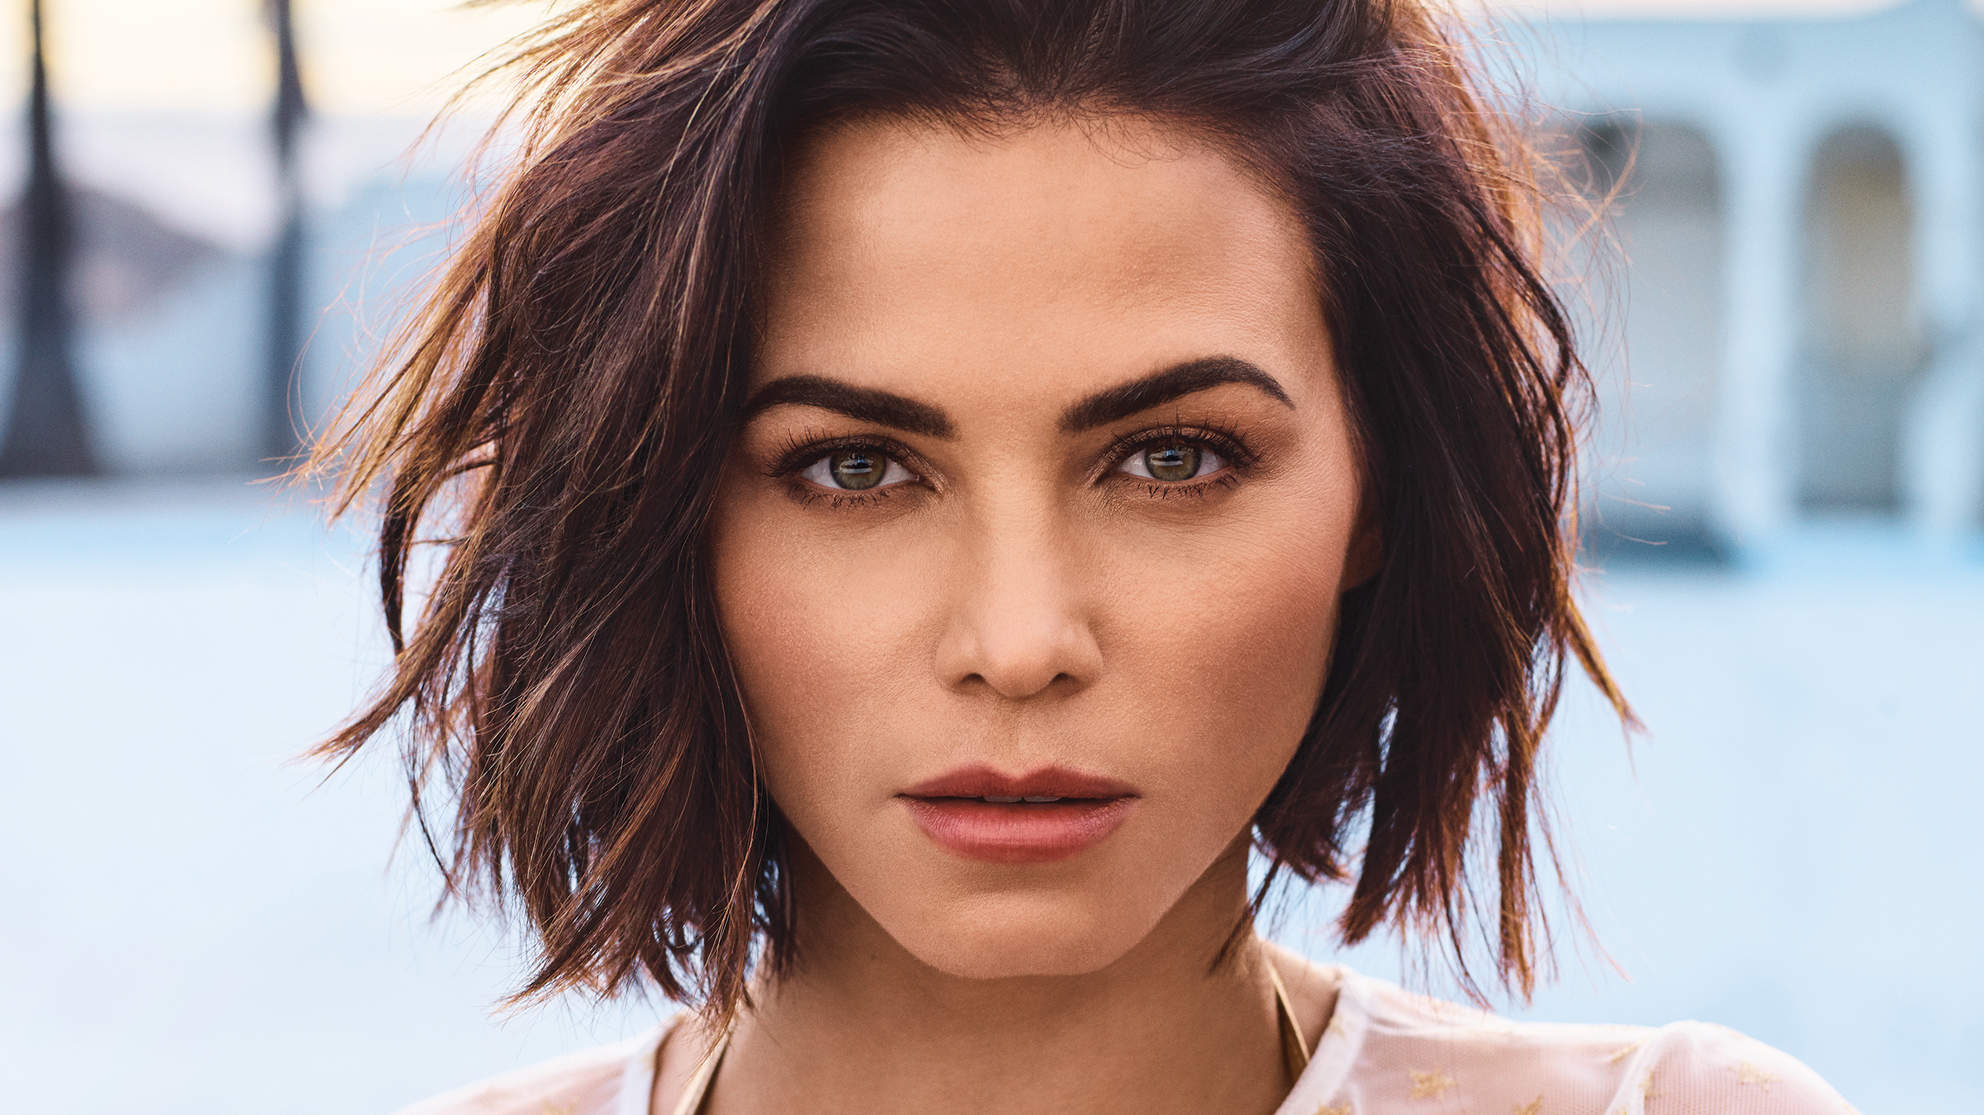 Images Jenna Dewan nude (96 photos), Topless, Fappening, Boobs, bra 2020